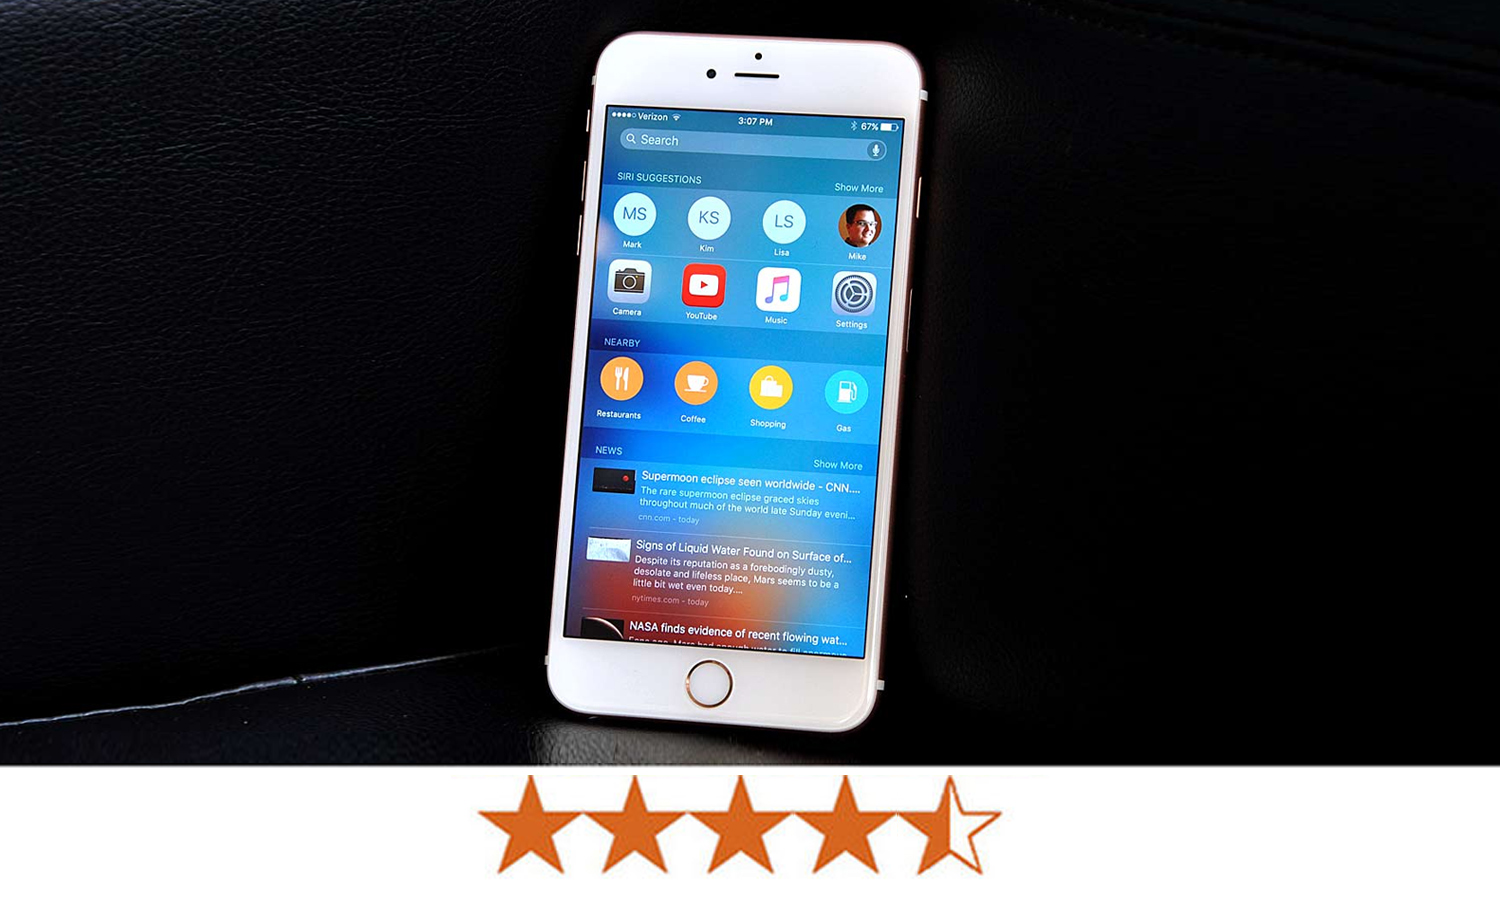 Apple iPhone 6s Review: Is It Good for Business?